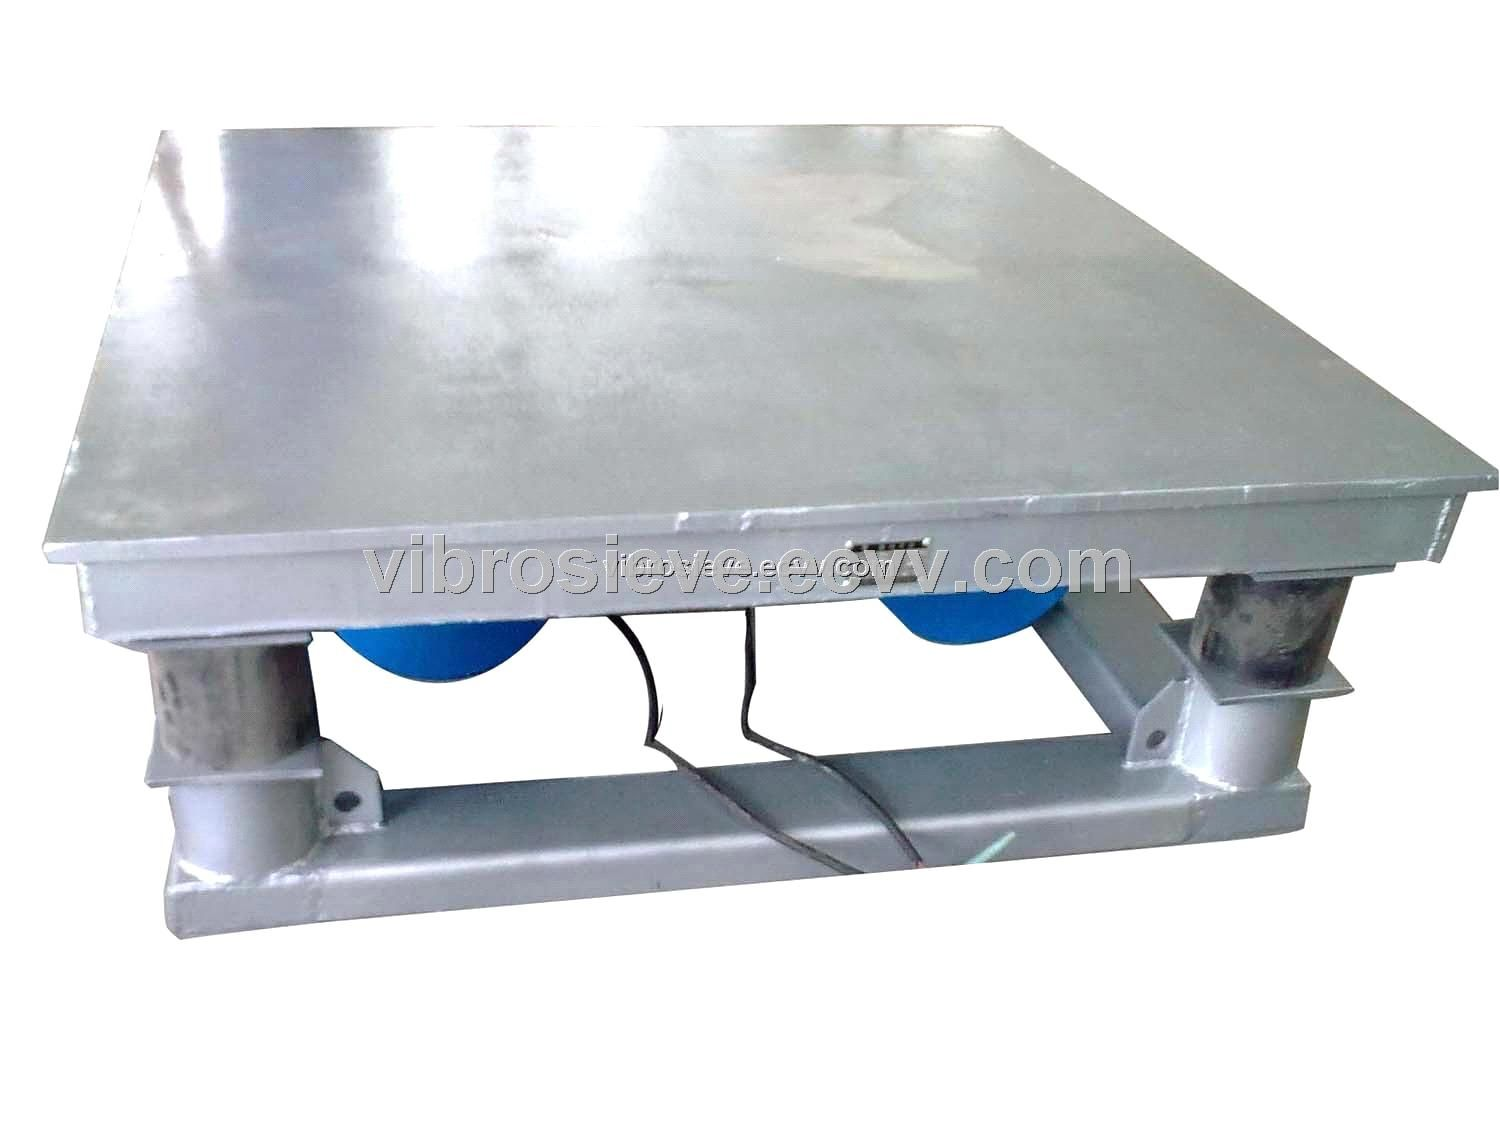 Vibrator for Concrete (ZP vibrating table) - China Concrete Equipment;vibrator for concrete;Concrete Vibrator, Forever Vibrating